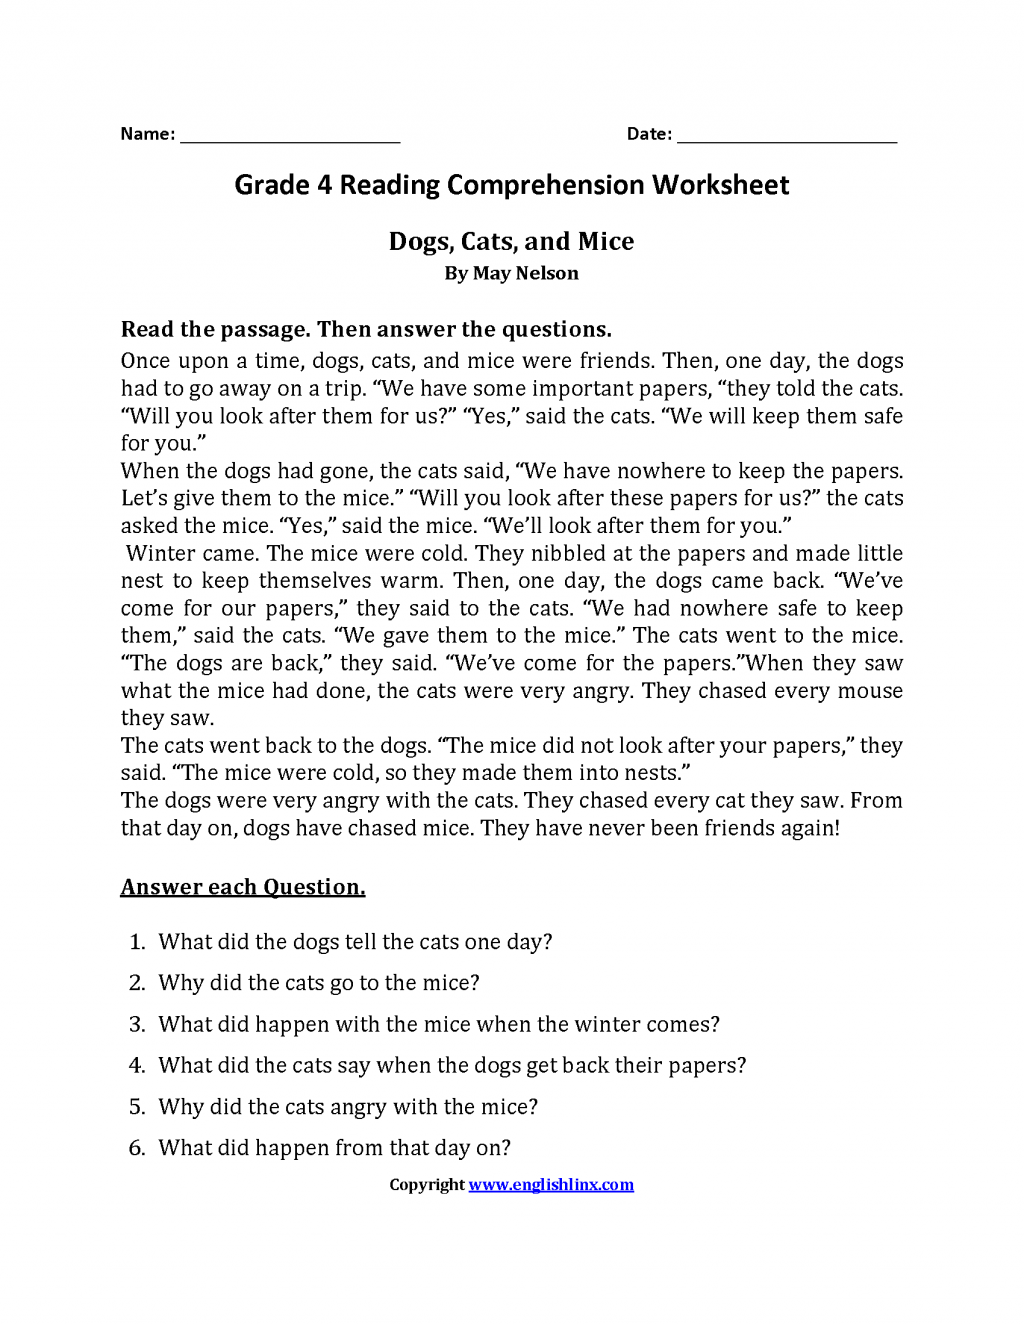 Worksheet Ideas Dogs Cats And Mice Fourth Grade Reading